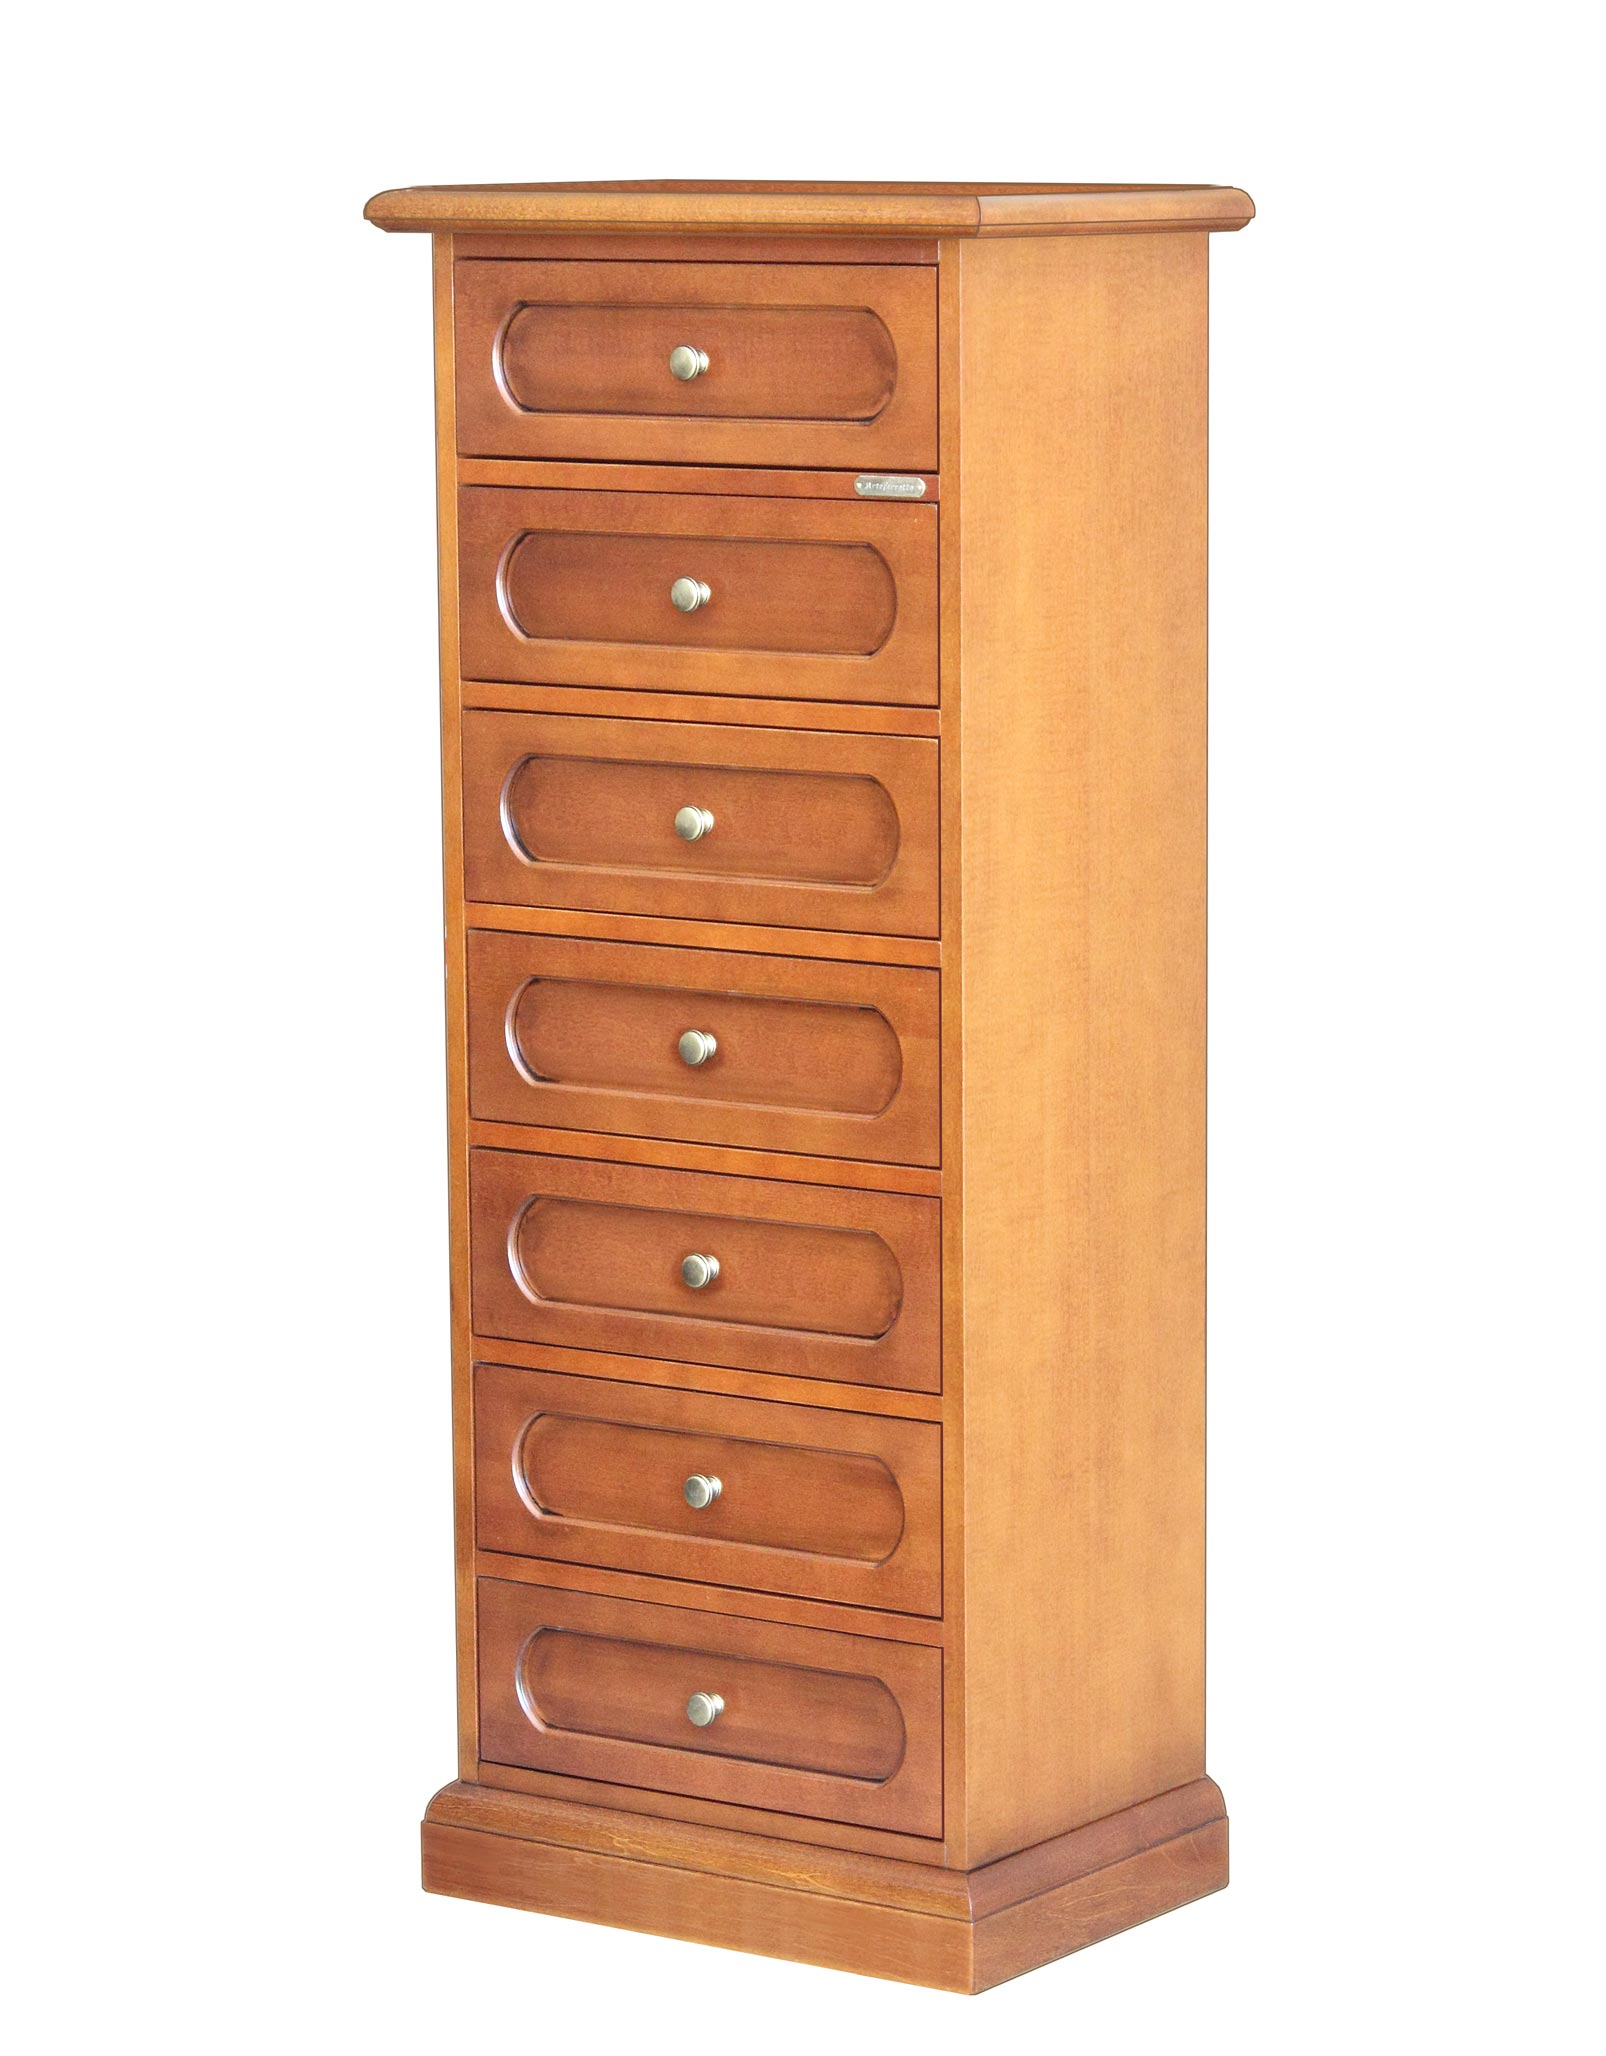 Classic chest of drawers - 7 drawers